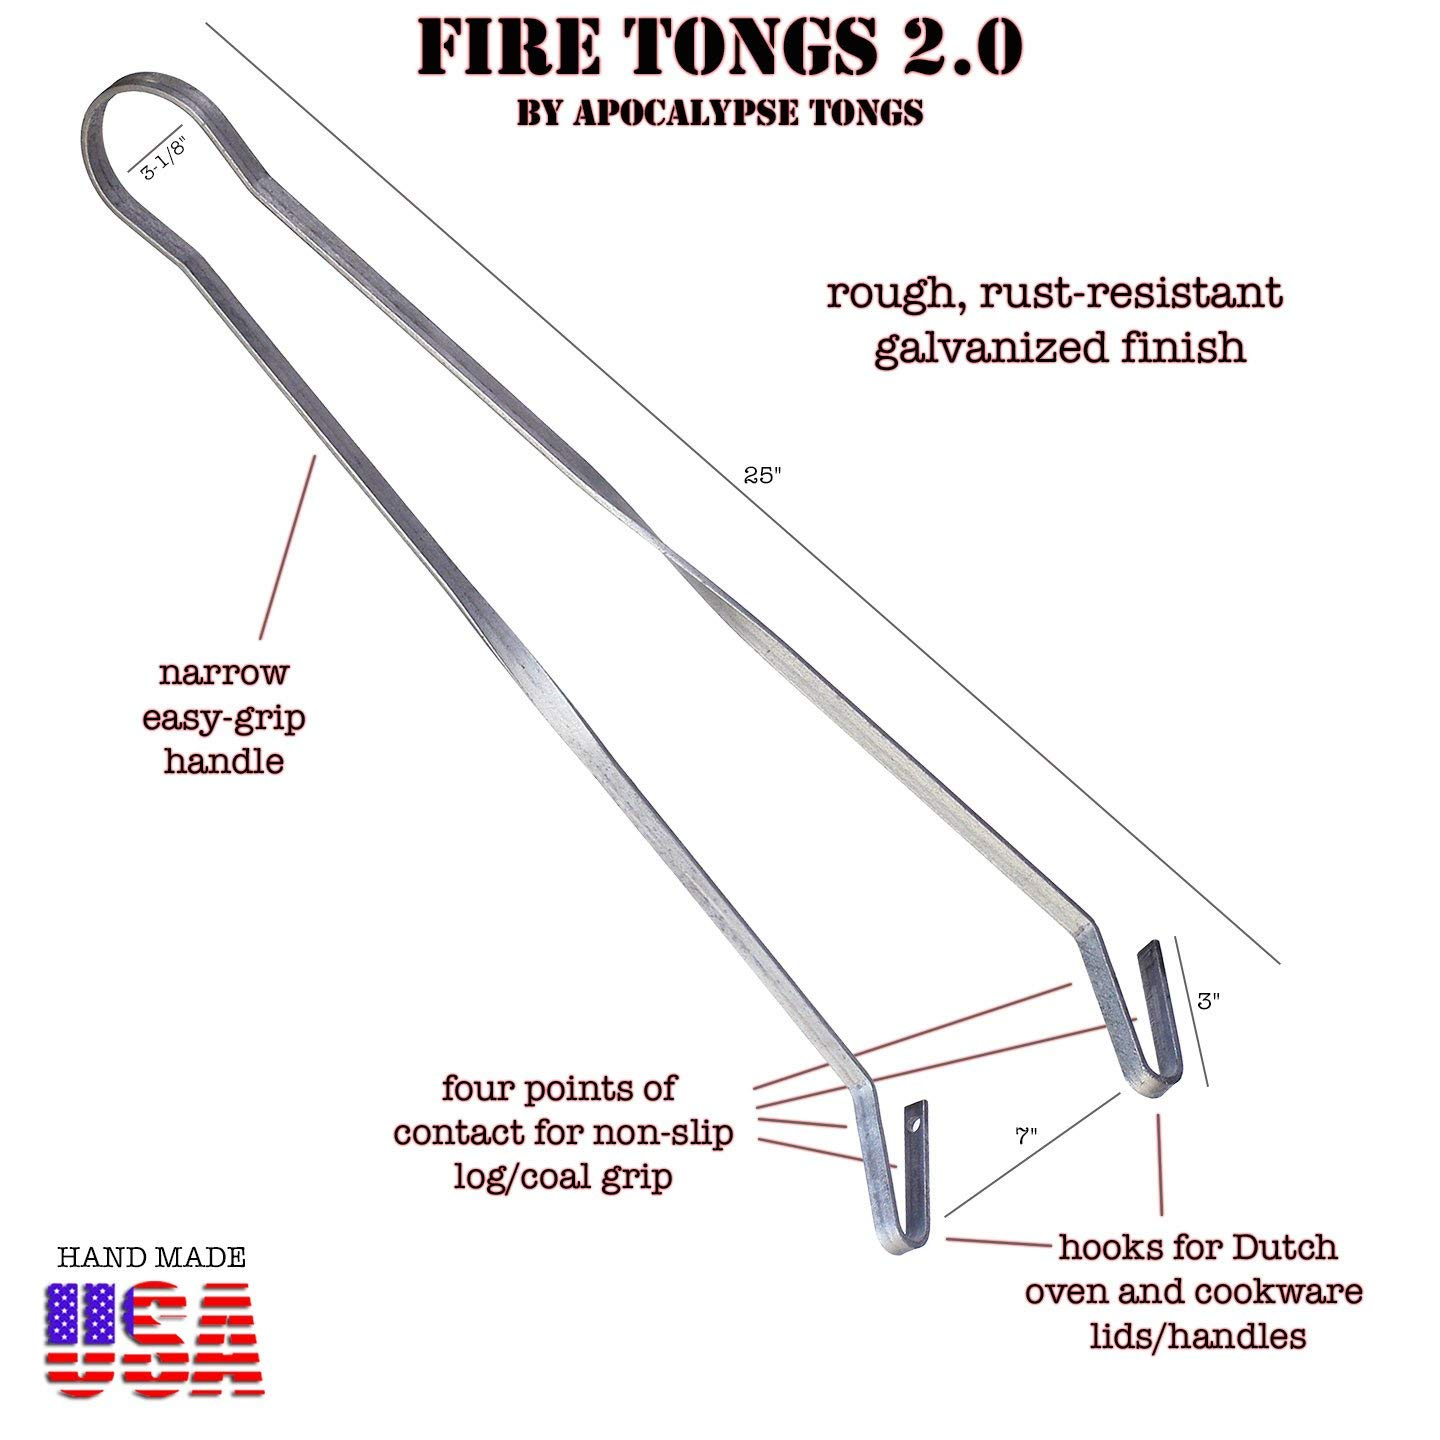 Fire Tongs 2.0 Fire Tongs, Fire Pit Tongs, Campfire Tongs, Charcoal Tongs, Fireplace Tongs, Dutch Oven Cooking Tools